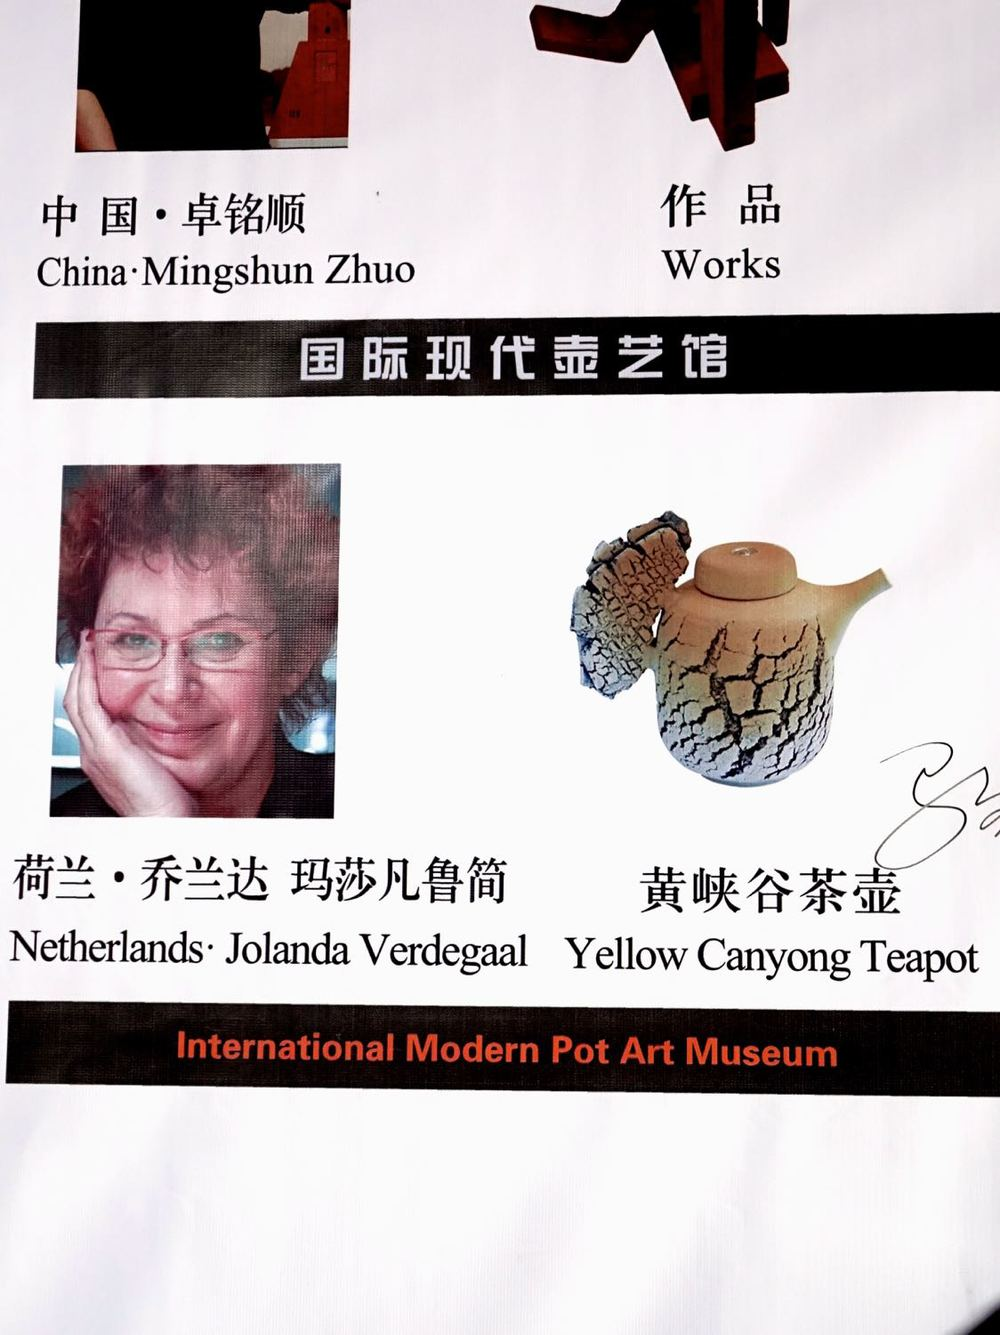 2014 –the wall of the International Modern Pot Art Museum; Yixing